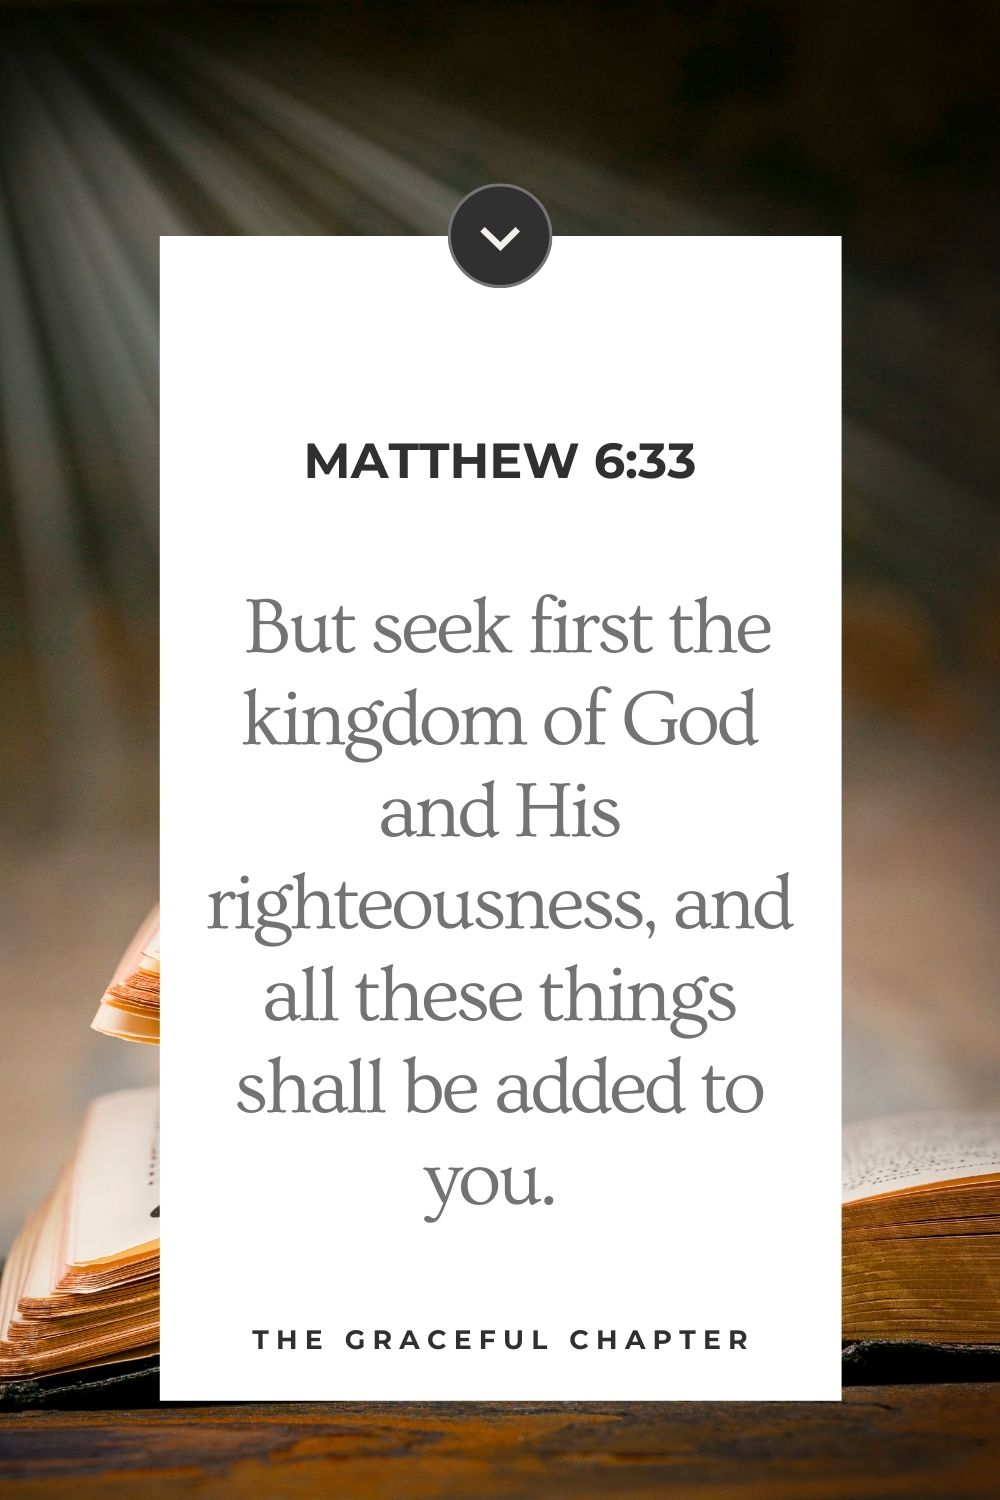 But seek first the kingdom of God and His righteousness, and all these things shall be added to you.